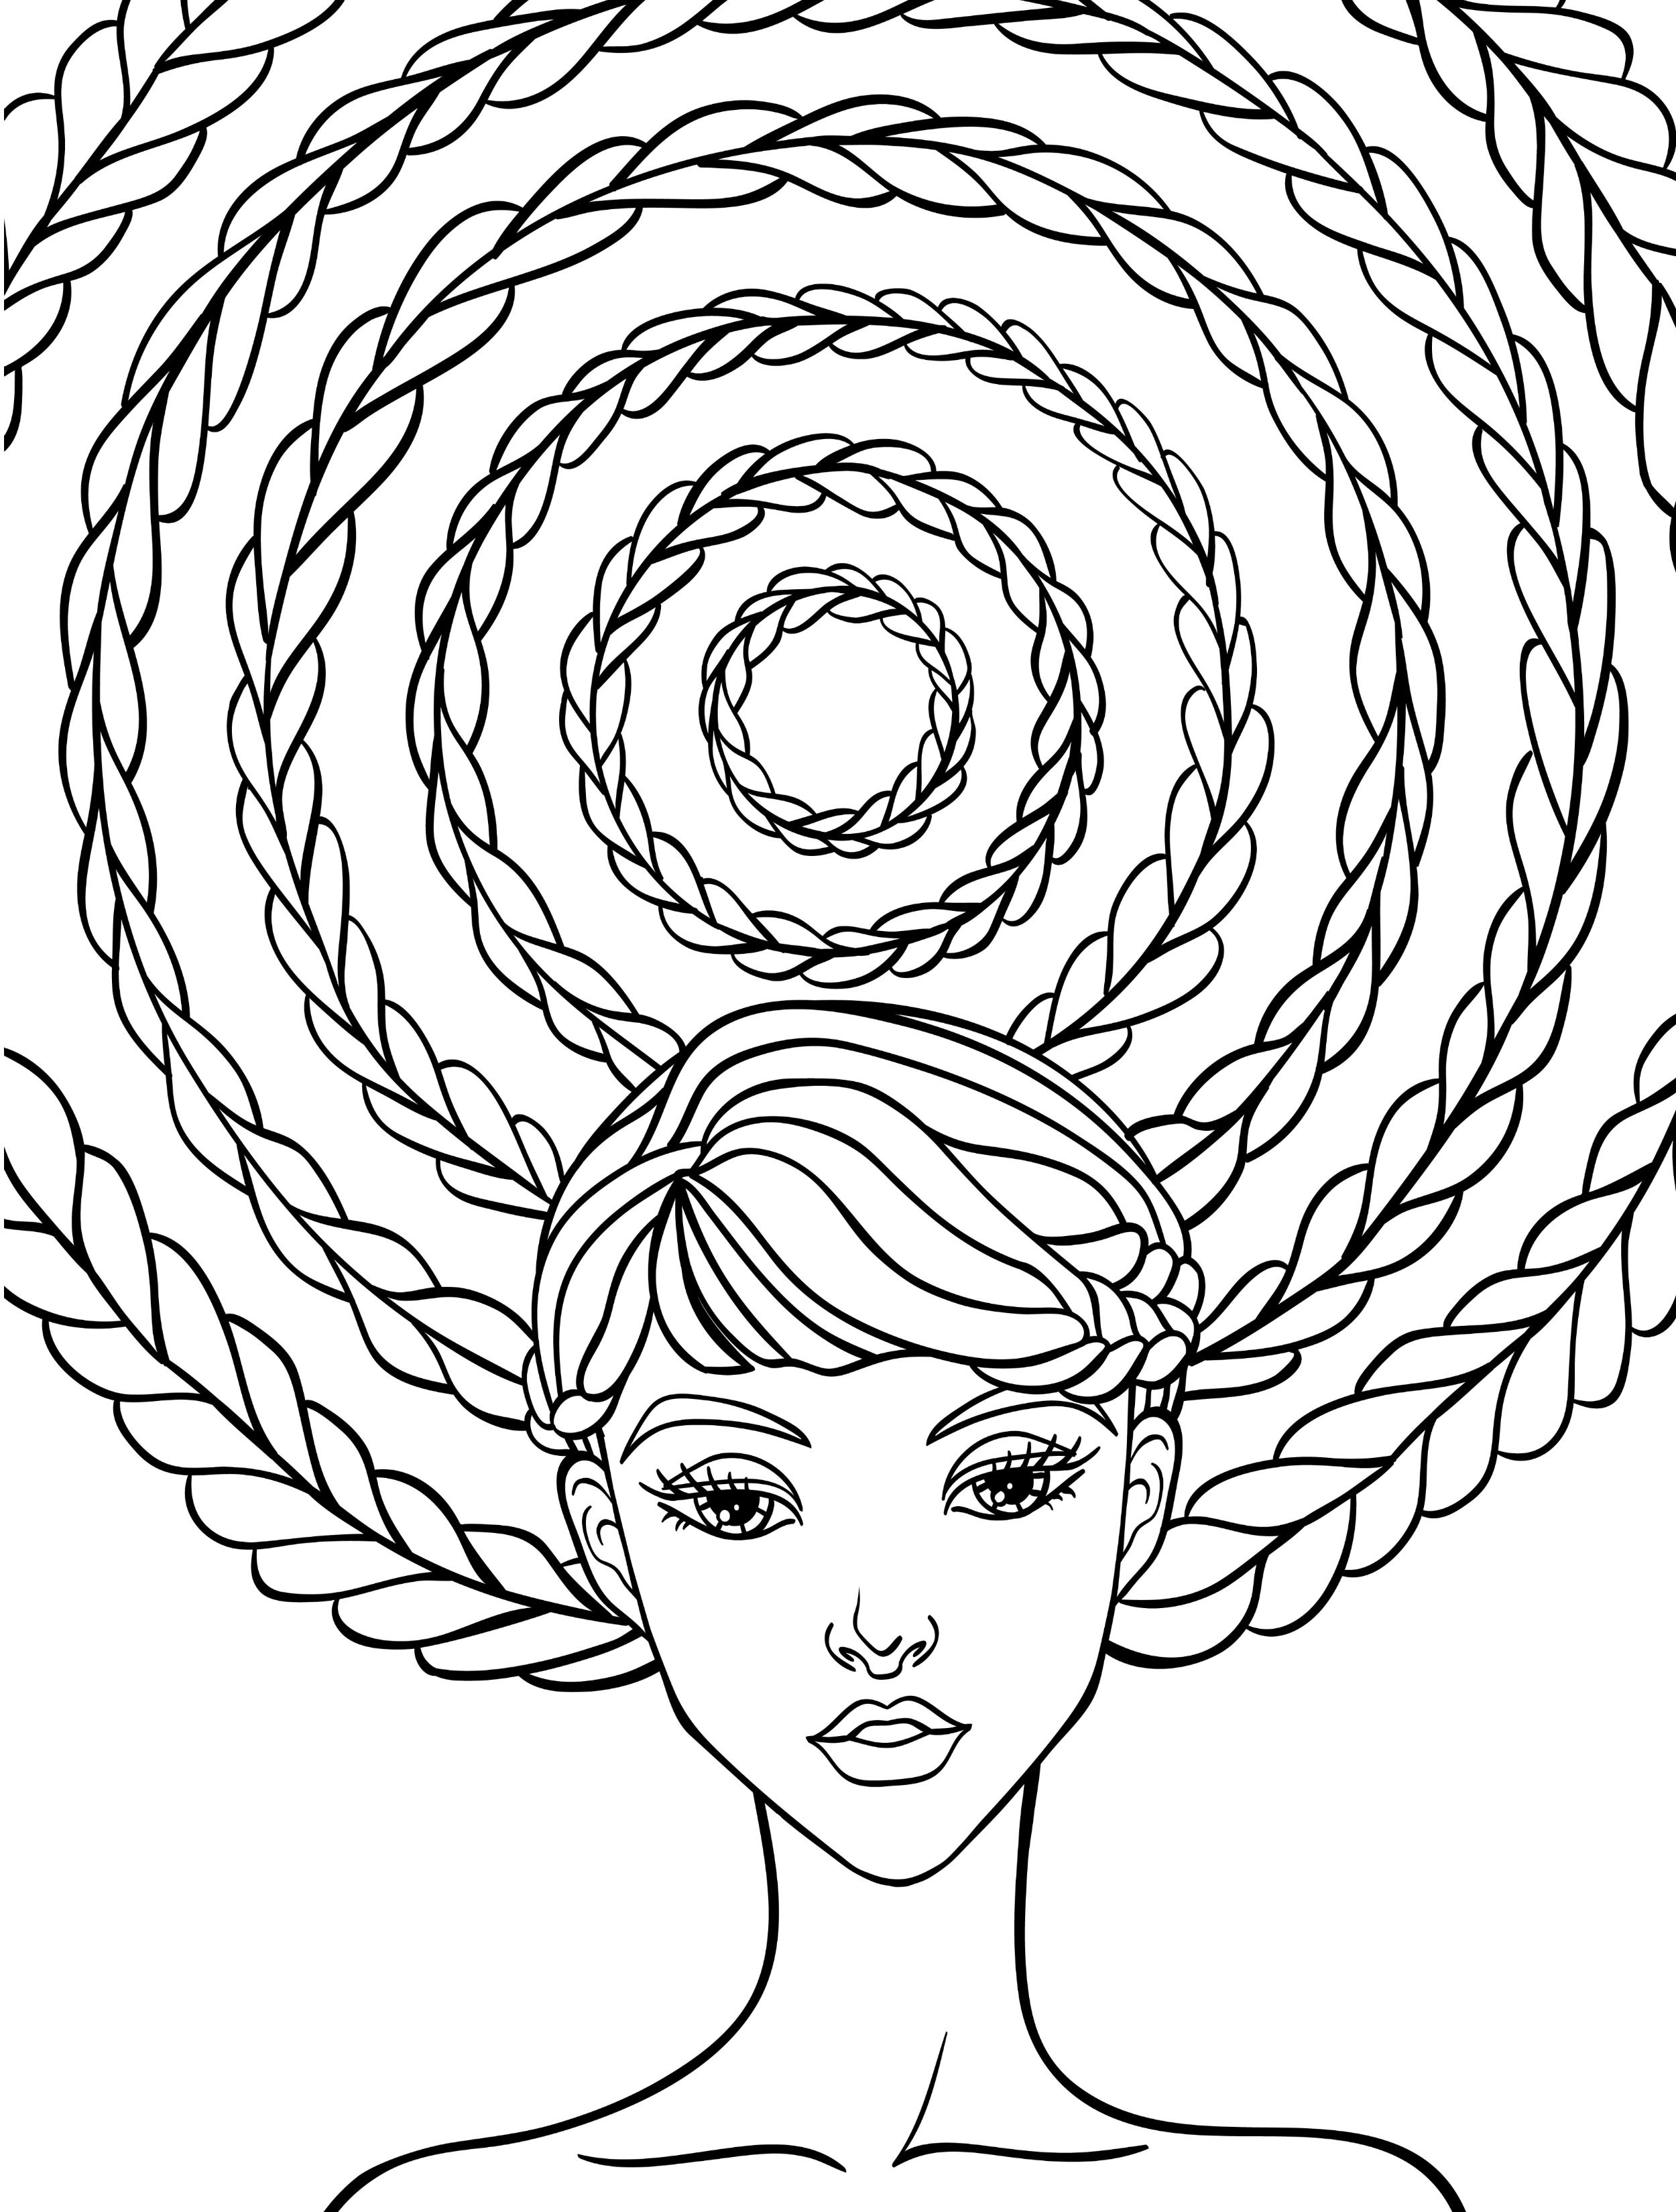 Coloring pages relaxing - 10 Crazy Hair Adult Coloring Pages Page 7 Of 12